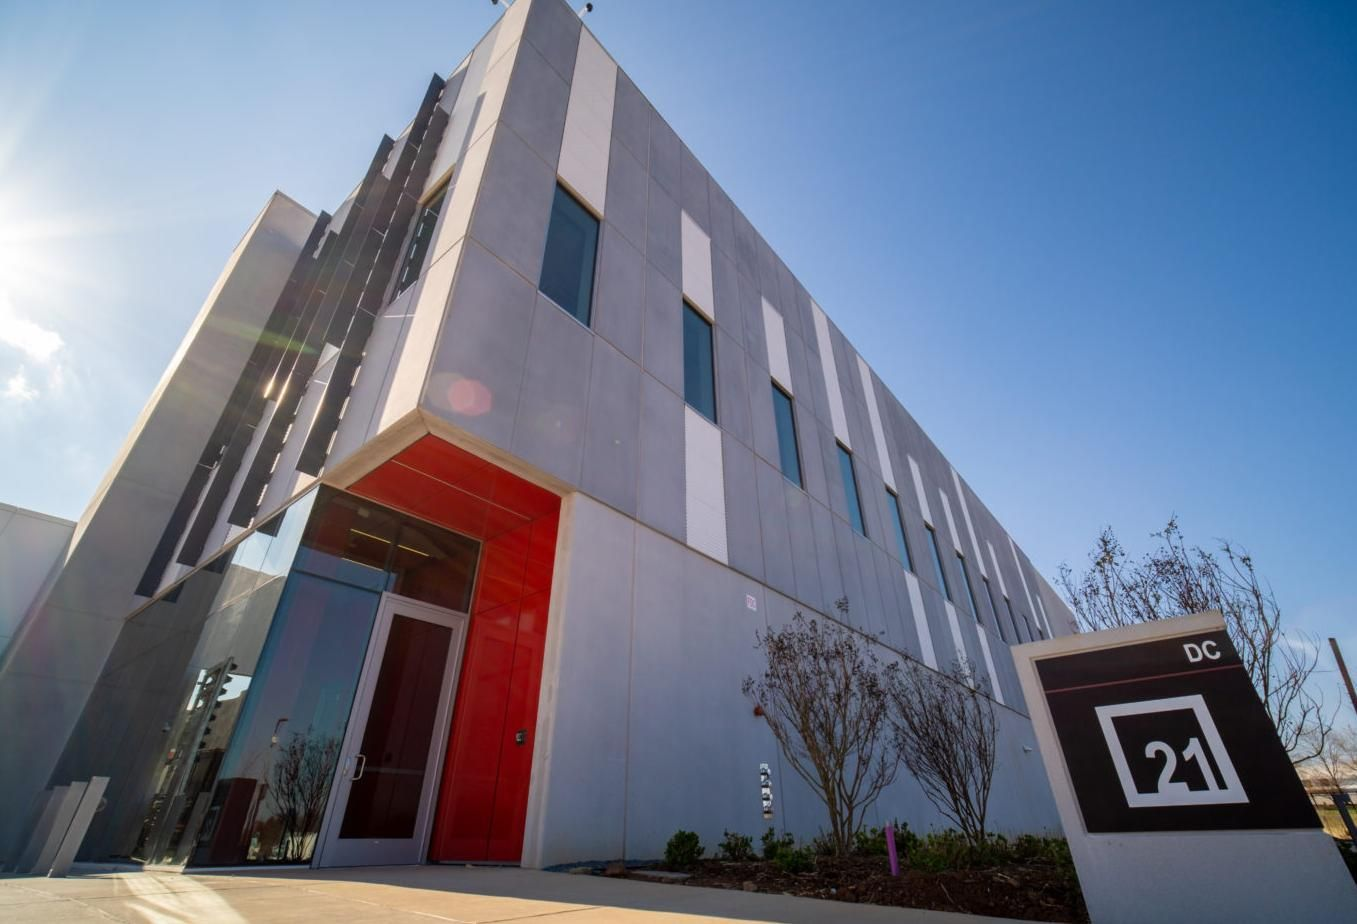 Multistory Data Centers On The Rise In Dense Markets